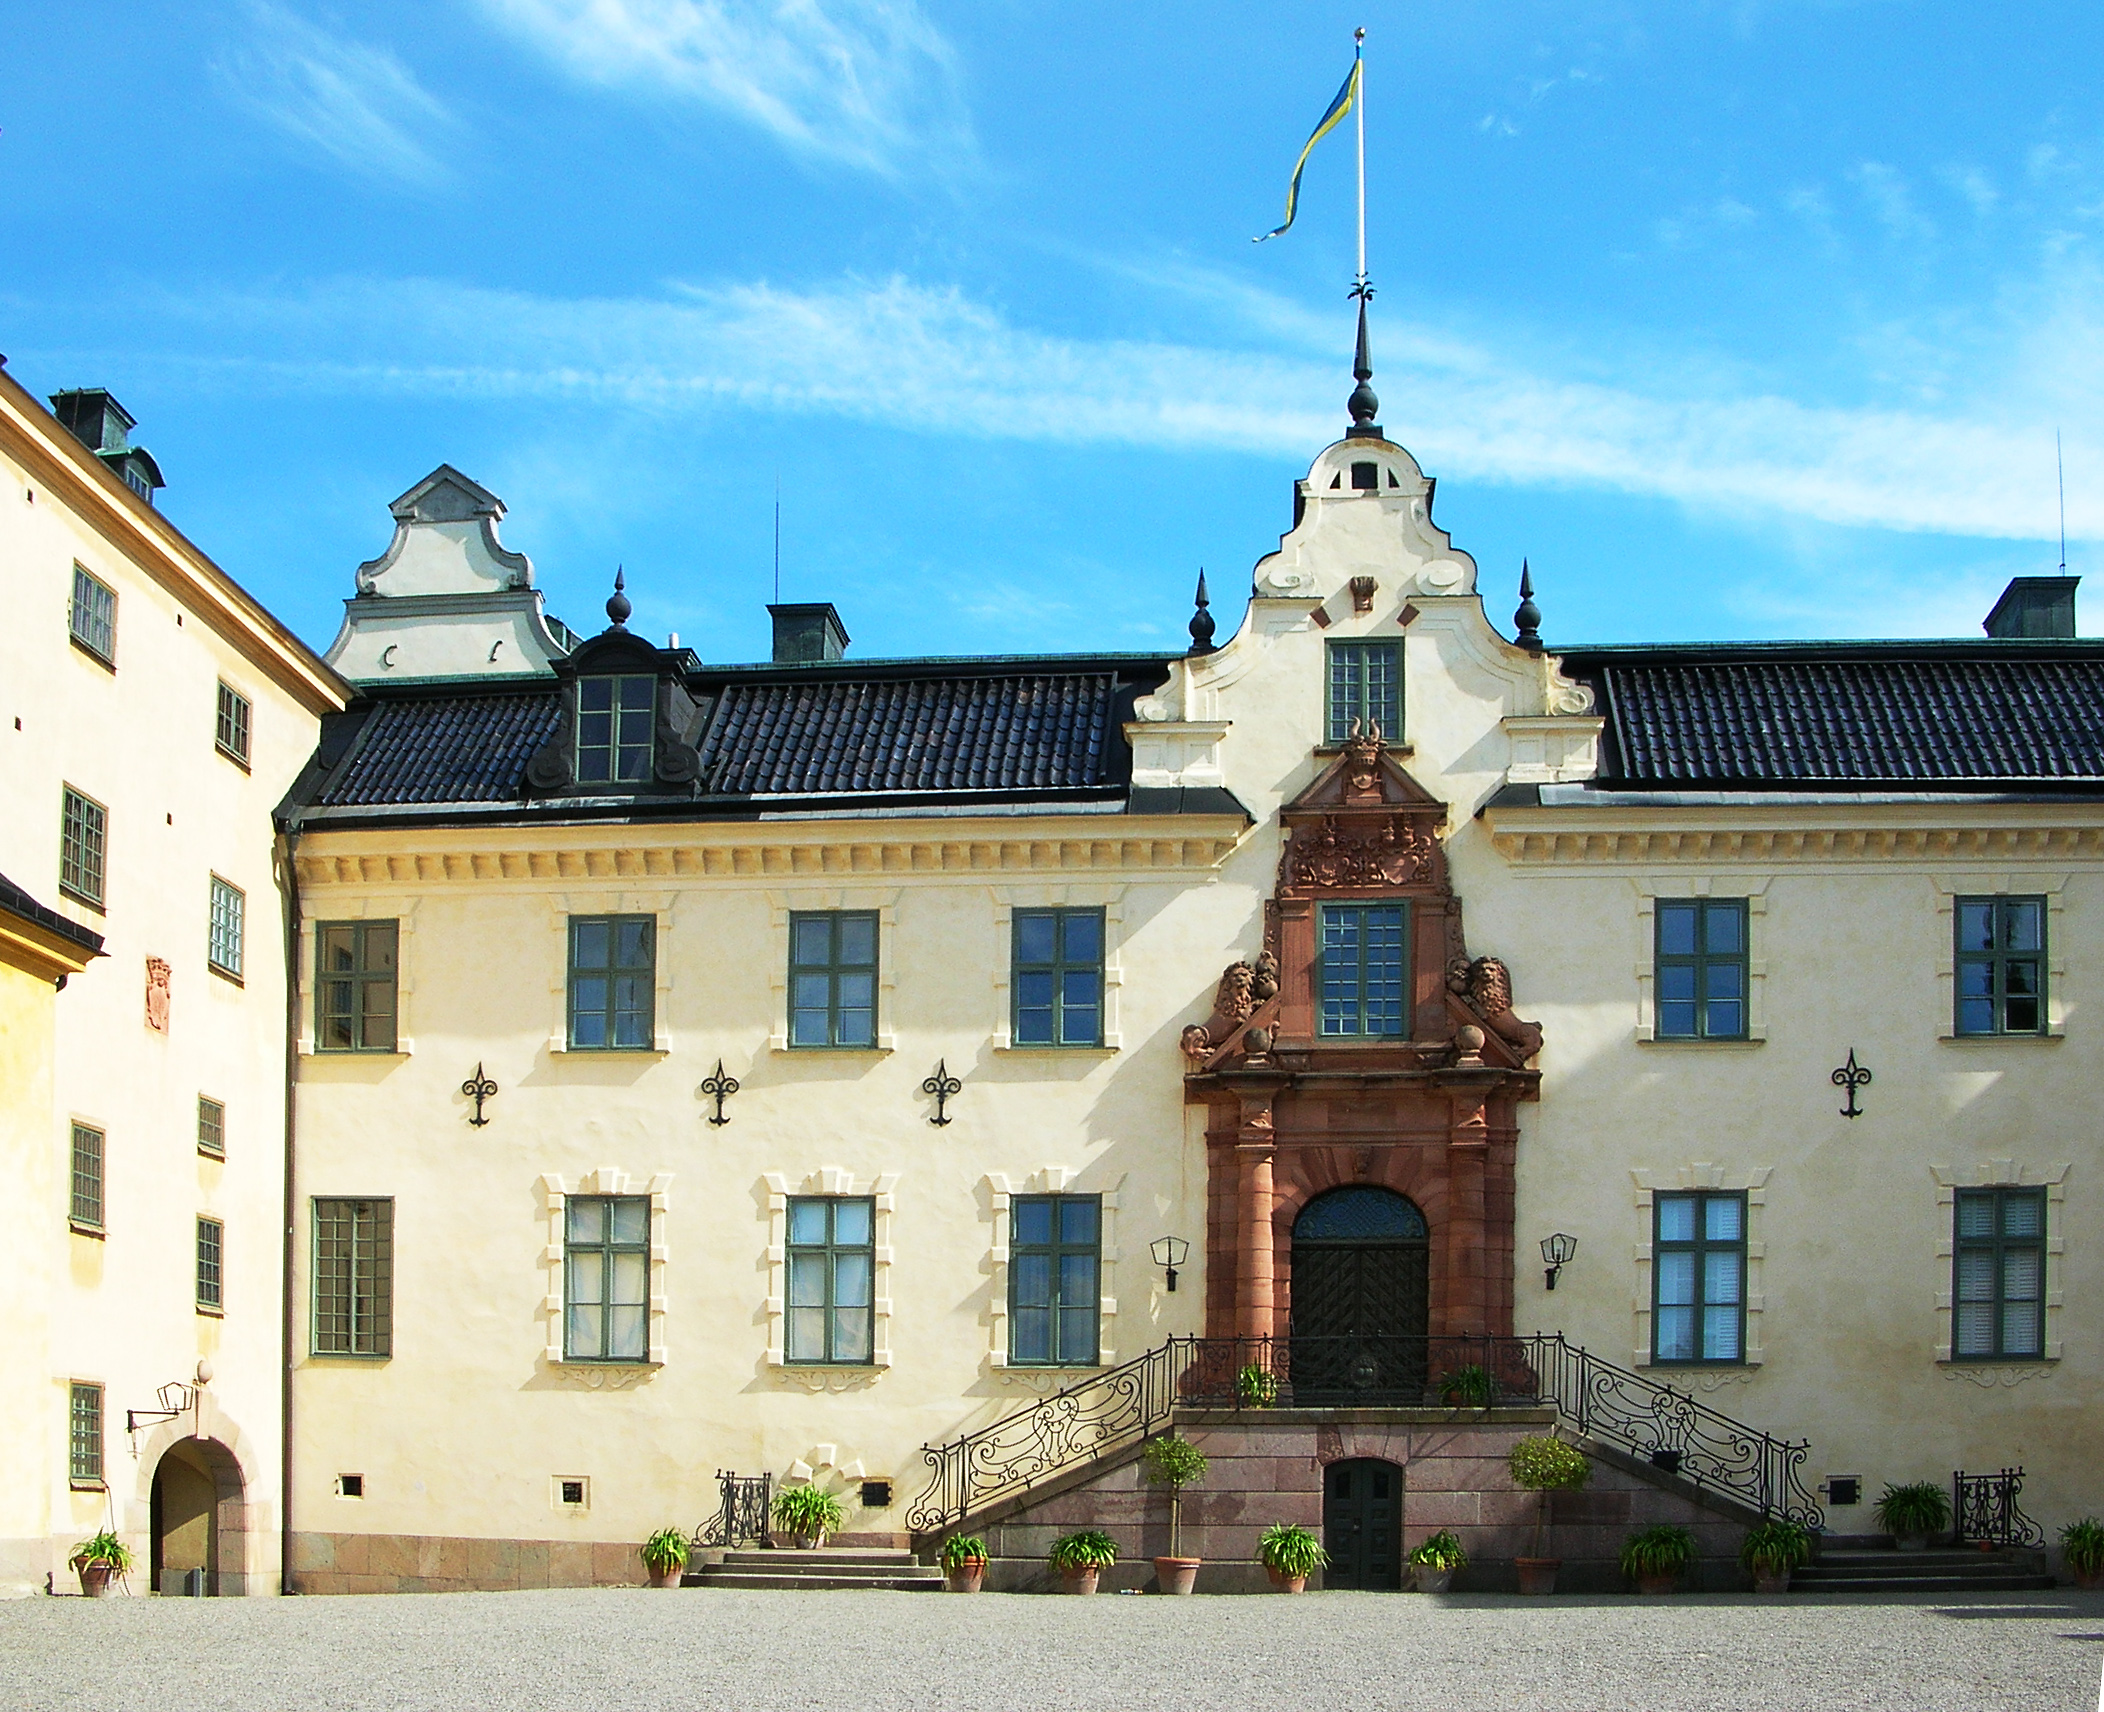 File:Tyreso slott main entry1.jpg - Wikimedia Commons